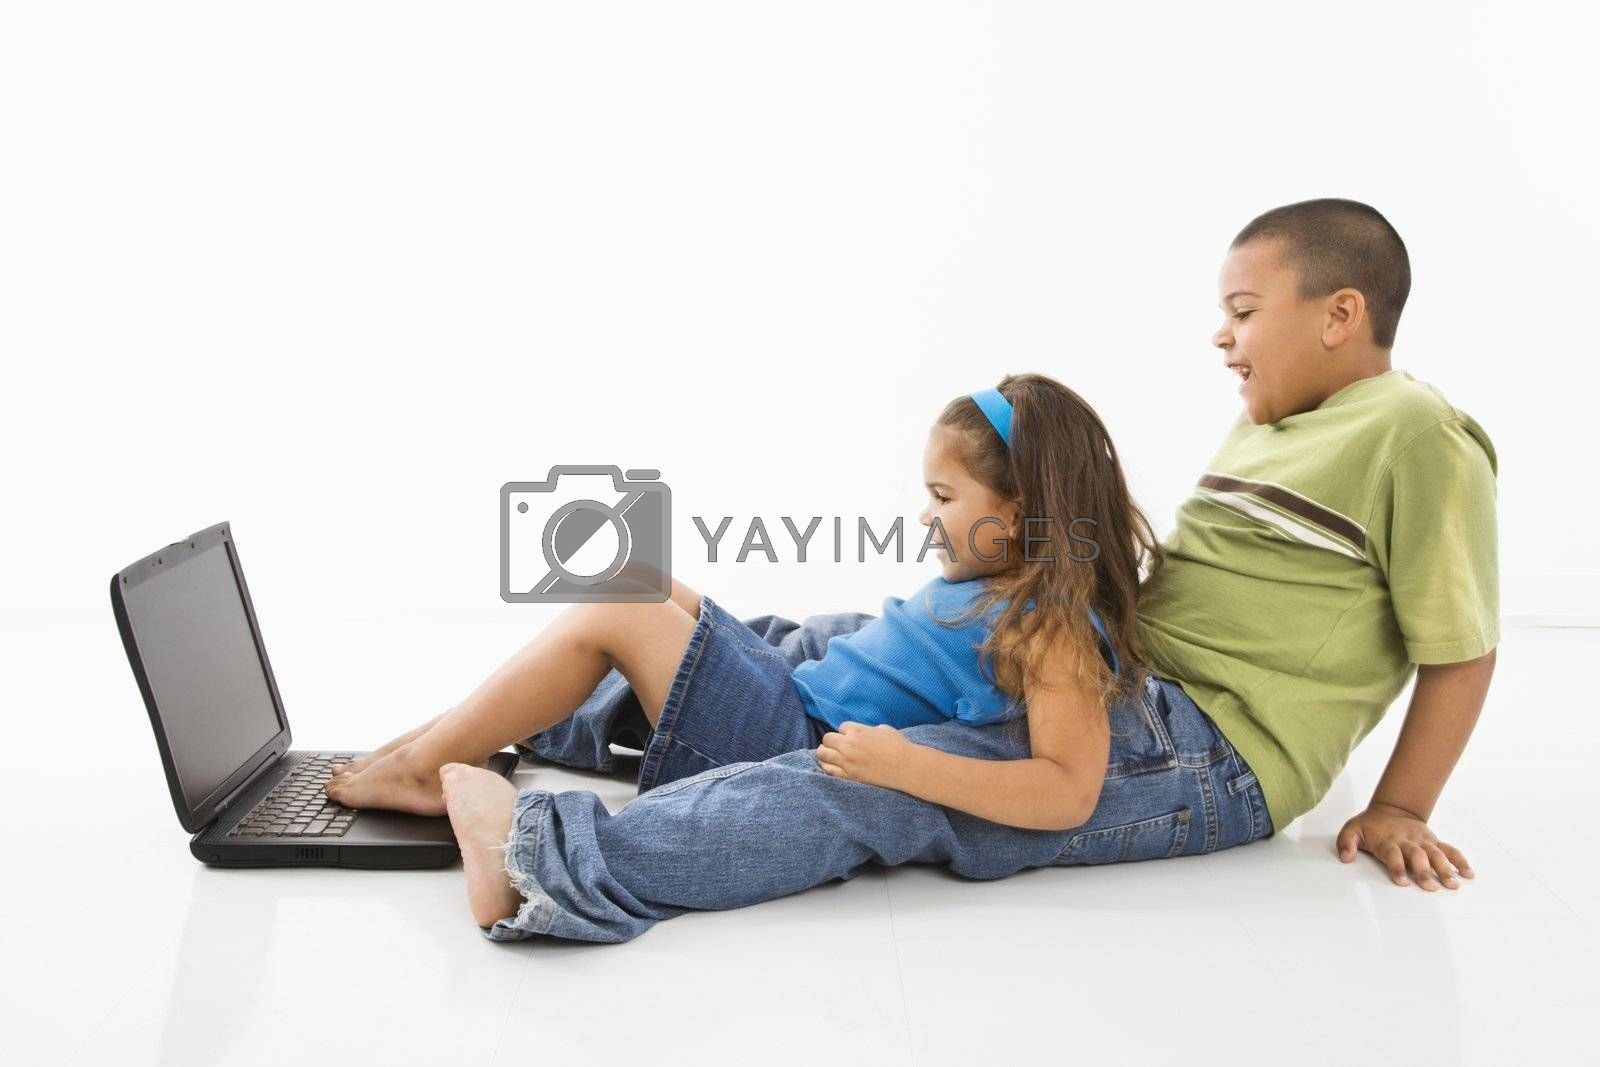 Brother and sister putting feet on laptop computer and smiling.